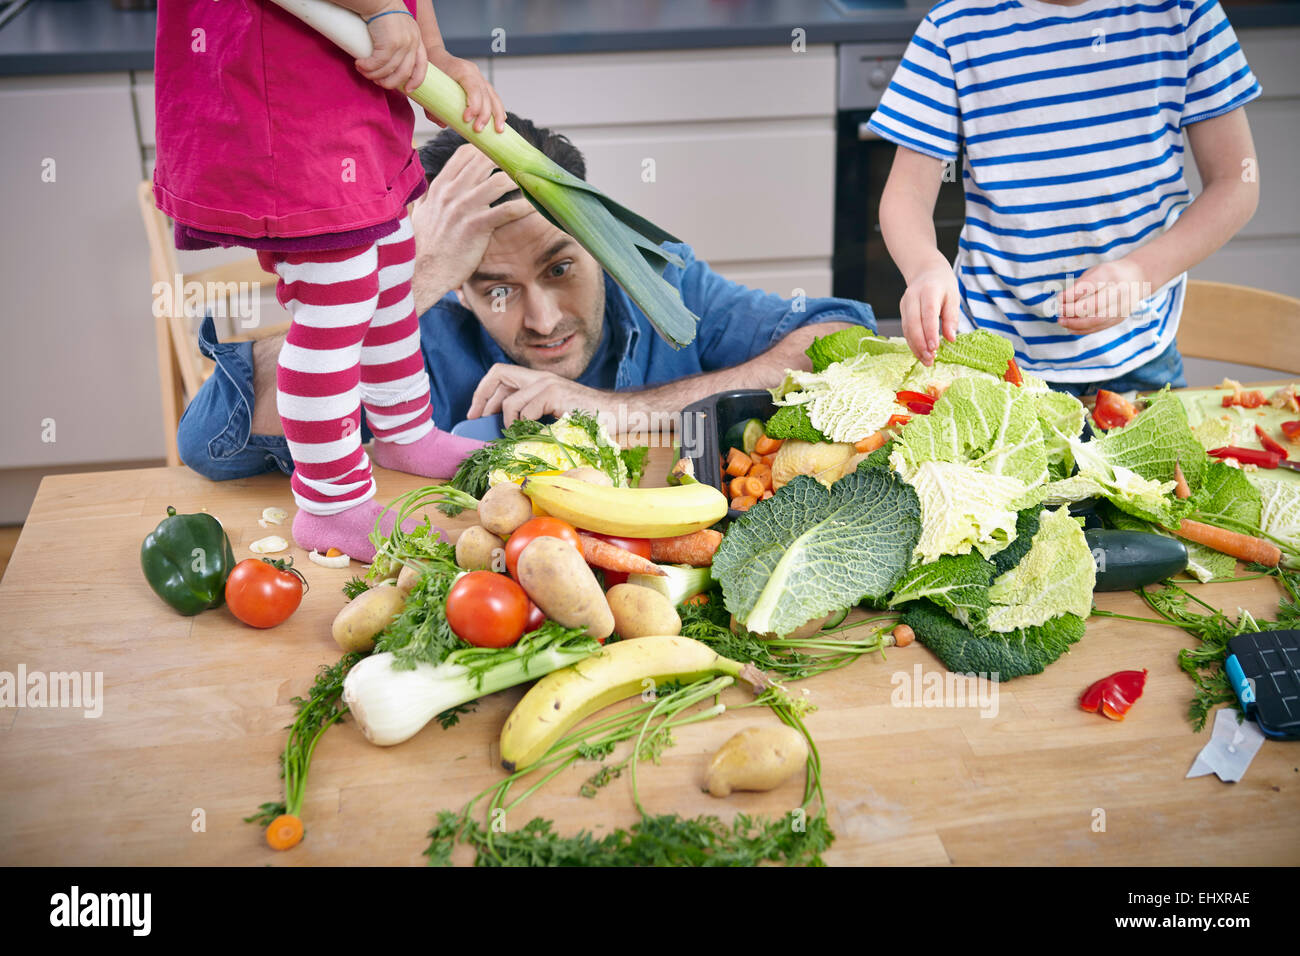 Desperate father trying to preparie food in chaos - Stock Image